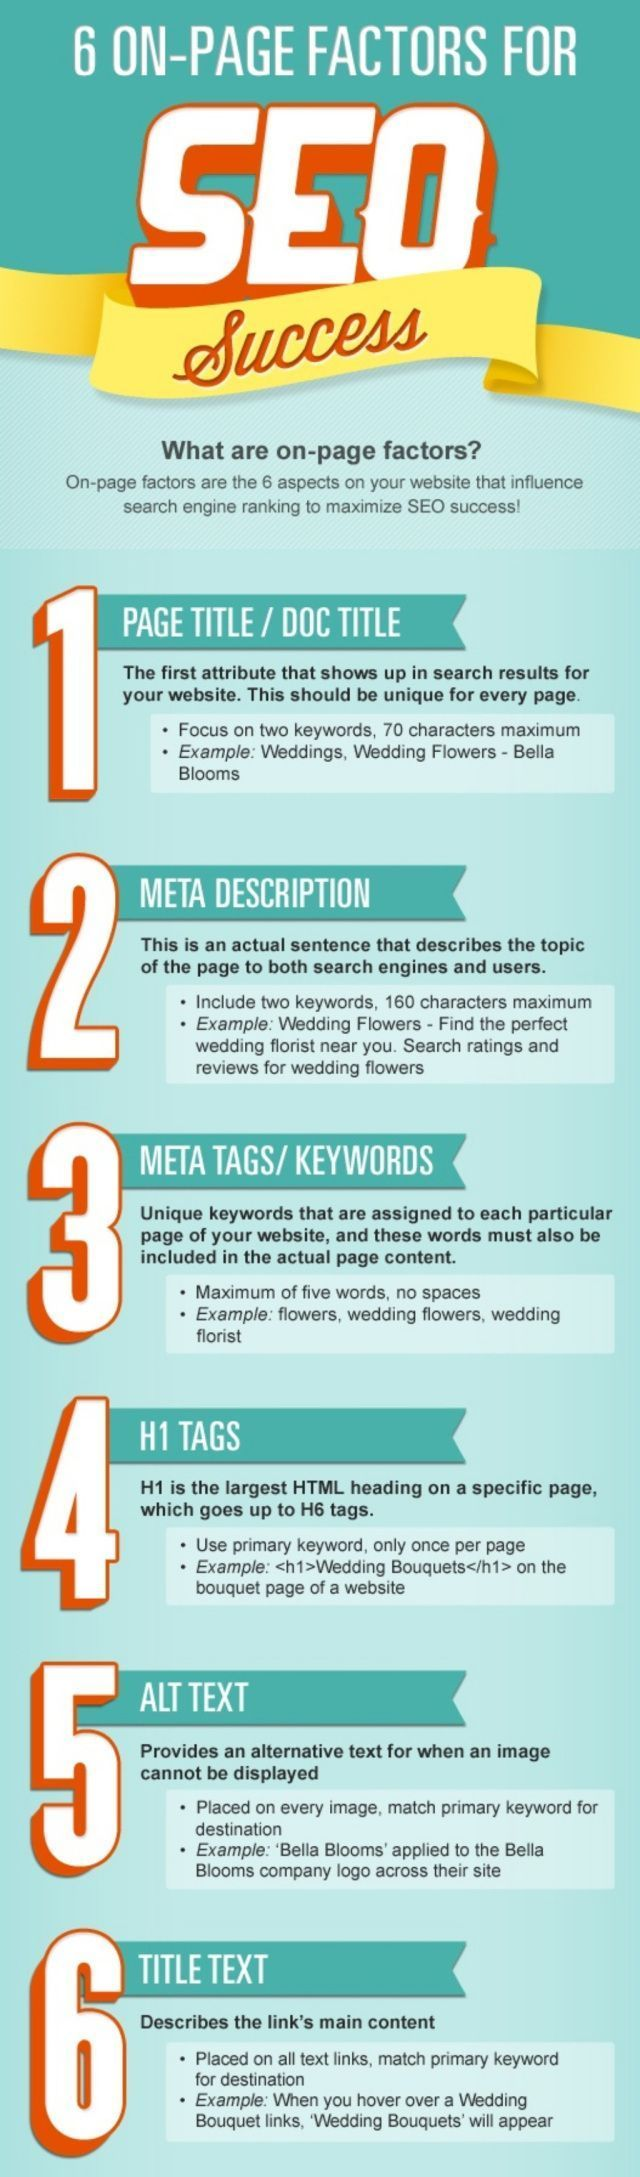 Ways to get successful #SEO